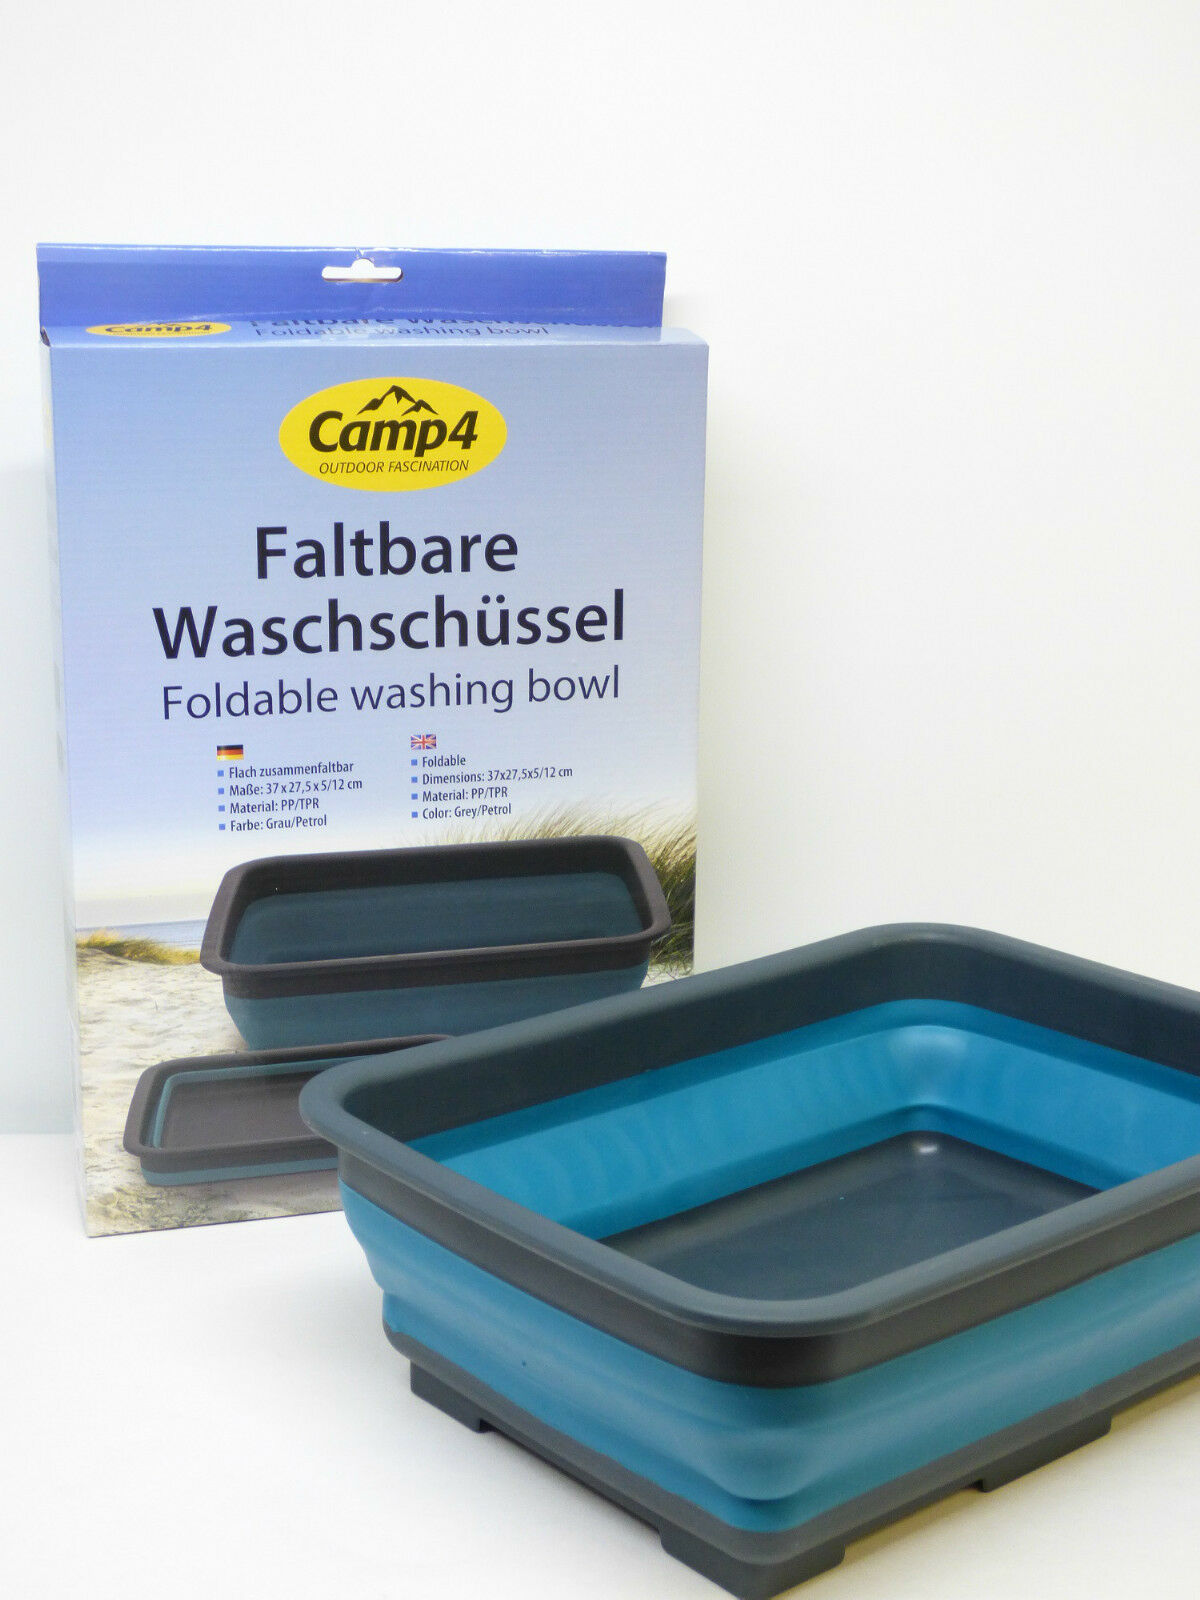 Camping-Bassine silicone silicone silicone Bol pliable Bateau Camping Caravane voiture 87be39